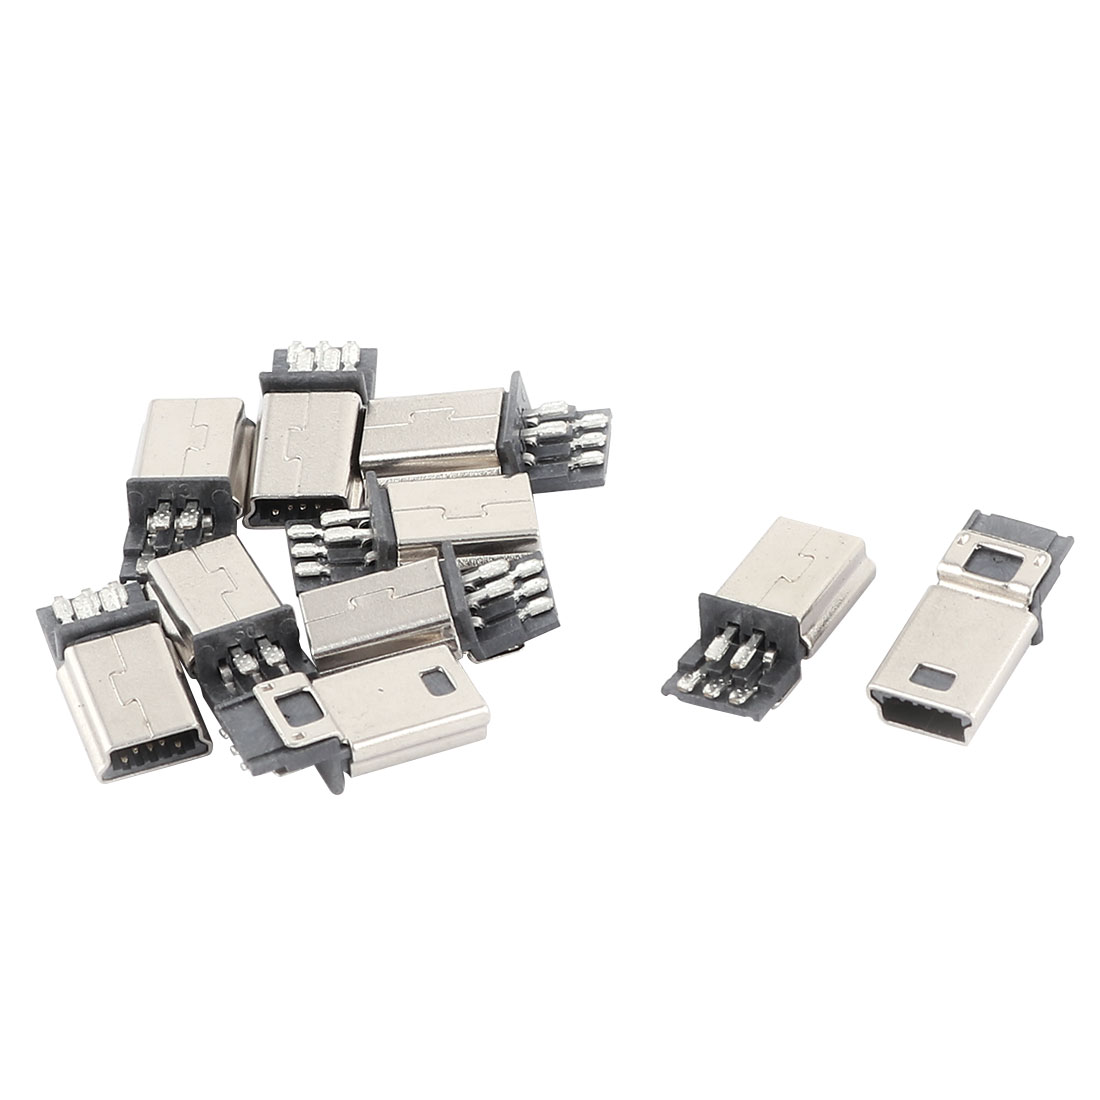 10 Pcs Mini USB 5 Pin Male DIY SMT Connector Silver Tone Dark Gray